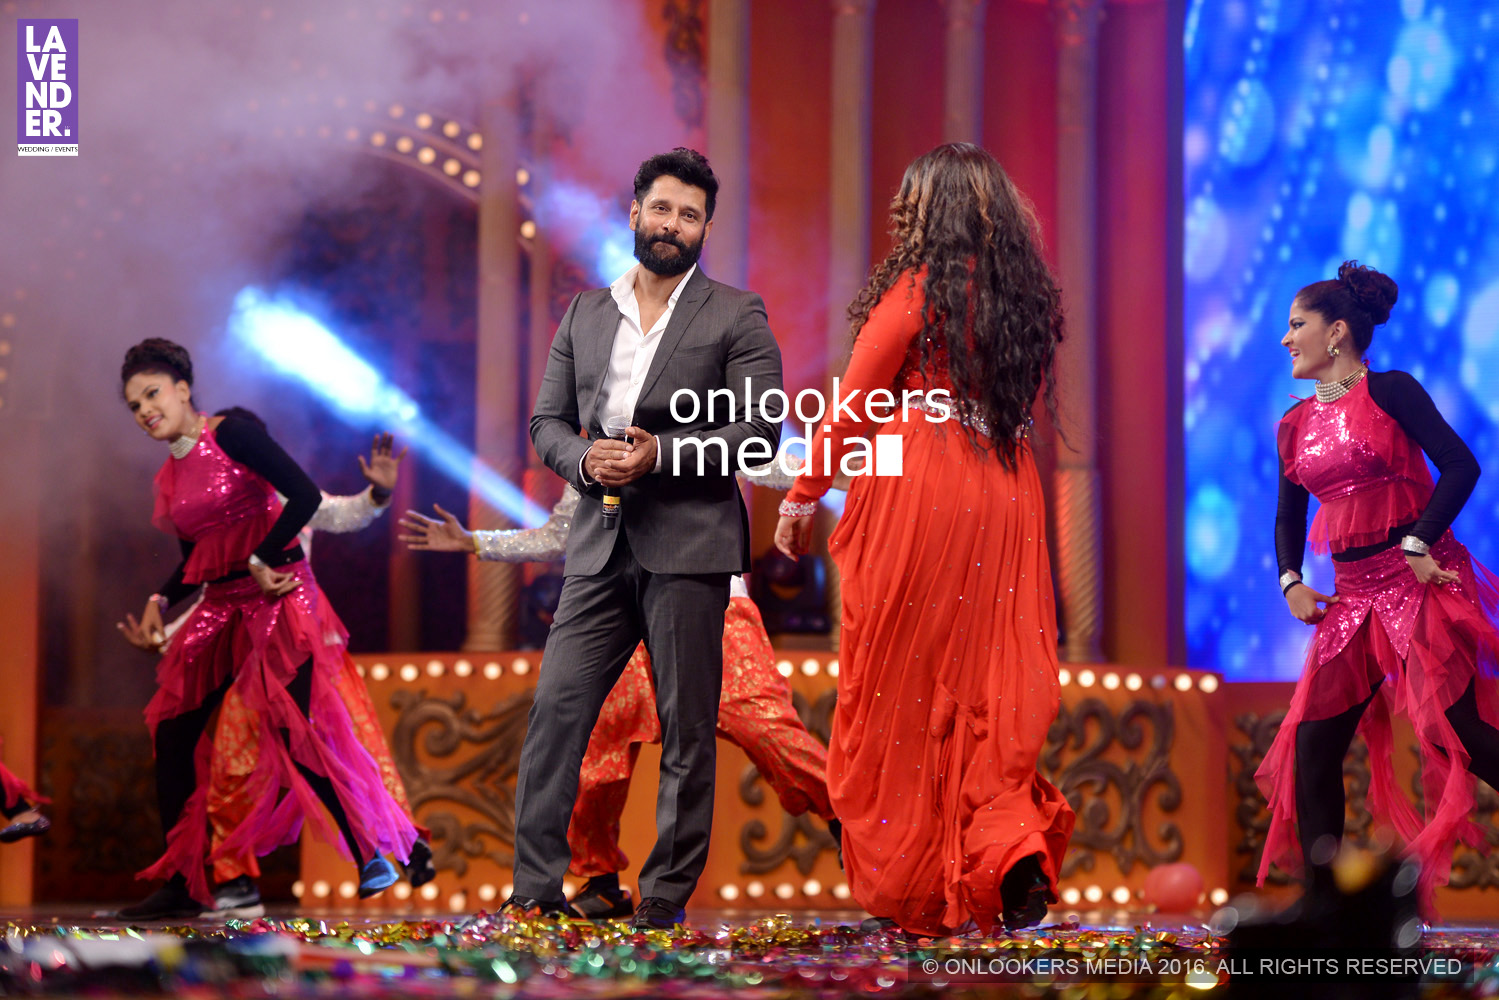 http://onlookersmedia.in/wp-content/uploads/2016/02/Vikram-at-Asianet-Film-Awards-2016-51.jpg